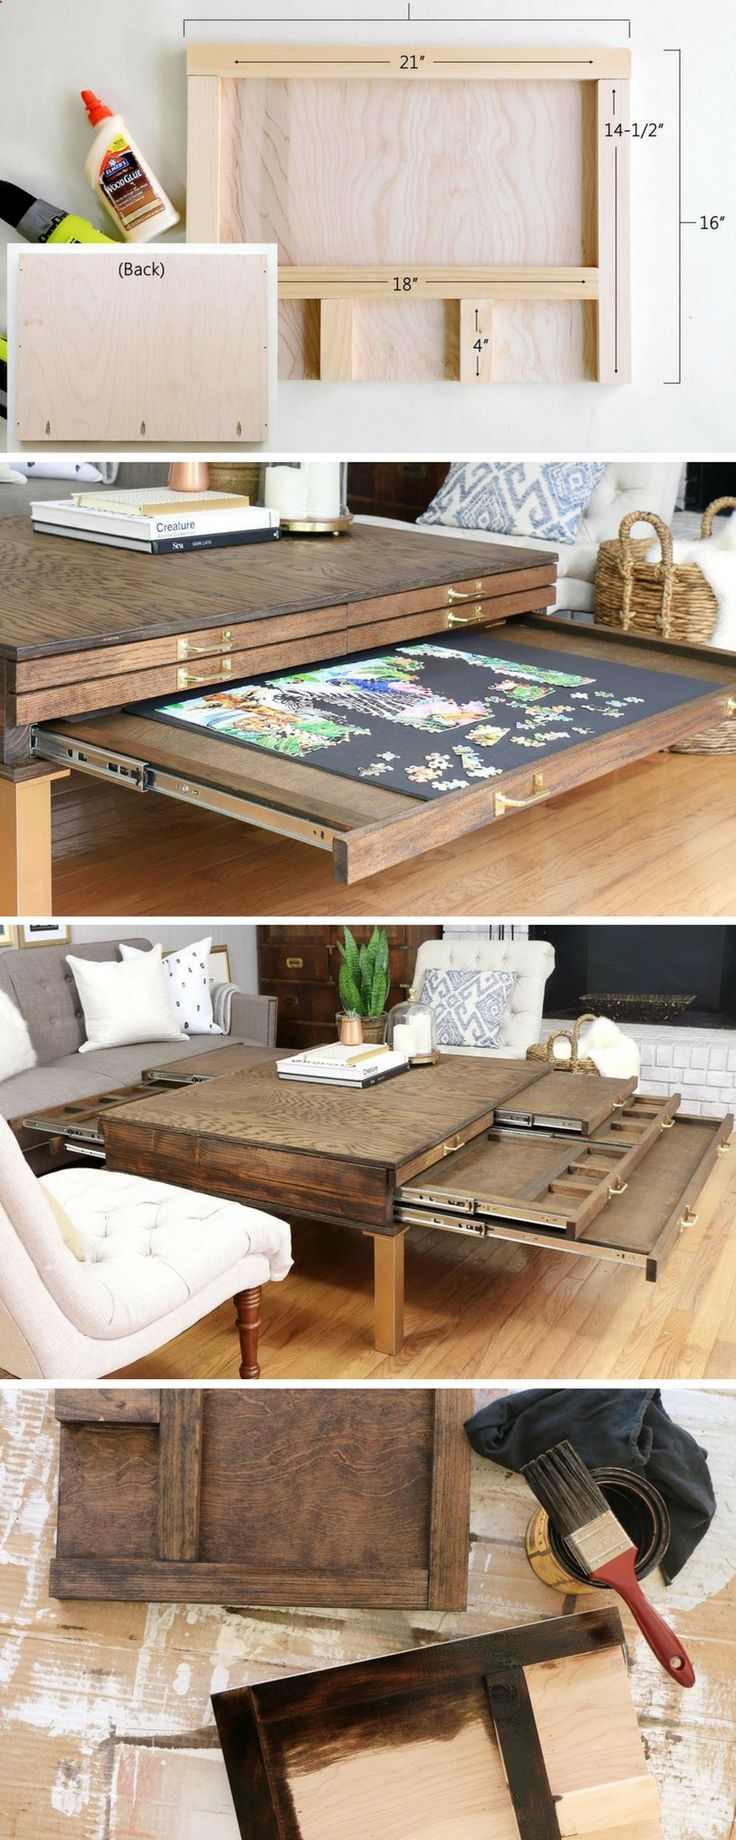 How to Build a DIY Coffee Table with Pullouts for Board Games | Free Project  Plan